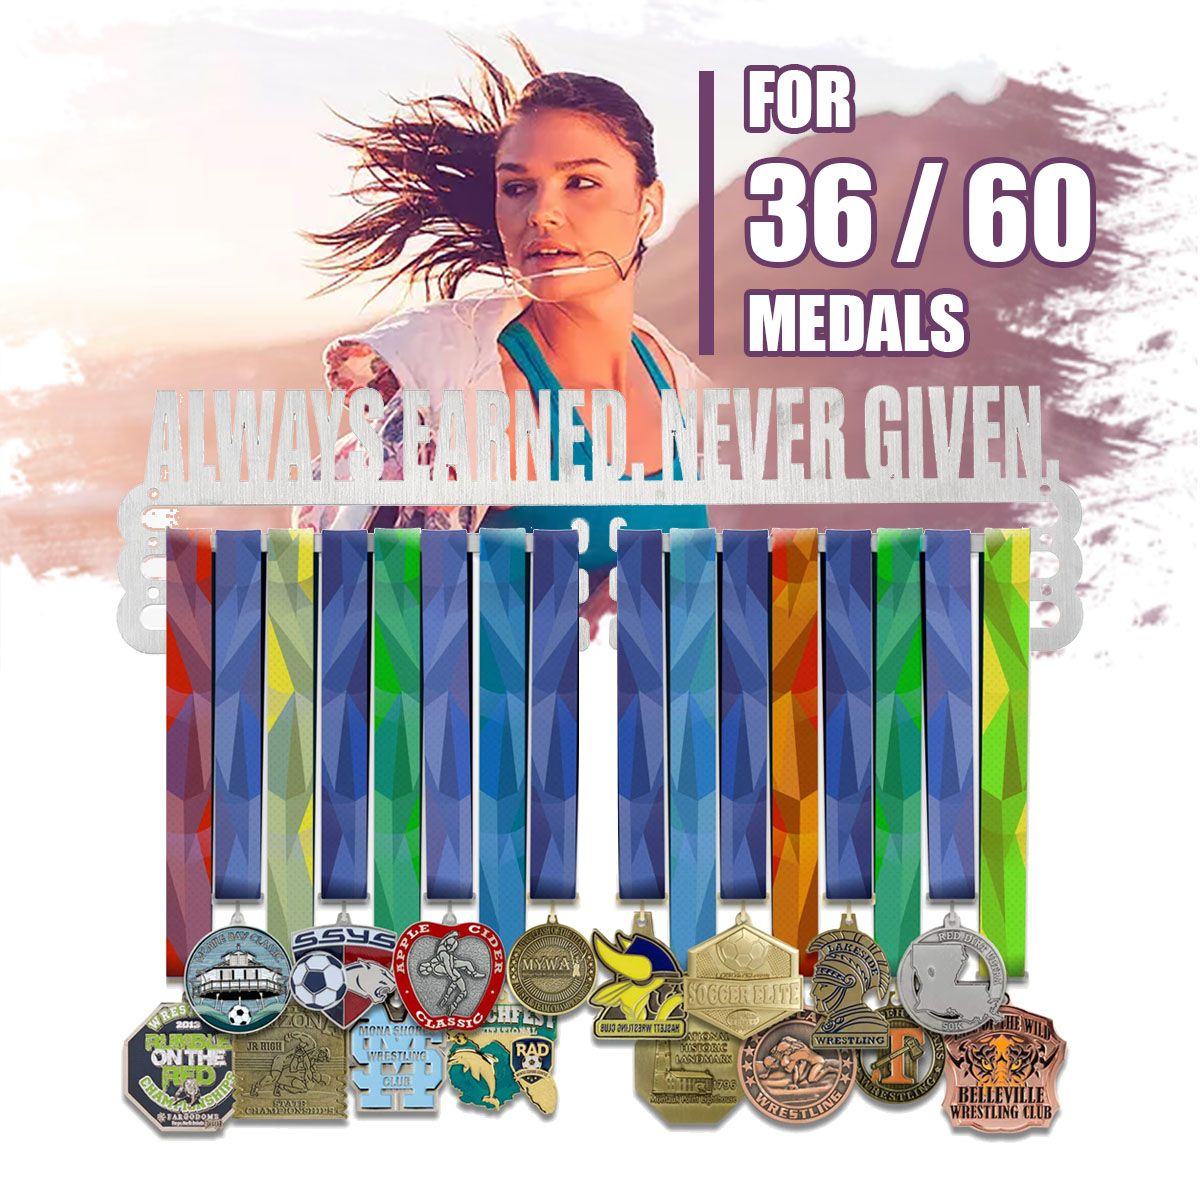 60/36 Medals Universal Medal Hanger Display Rack Holder Stainless Steel Wire Medals Hanger Triple Bar Sport Running Swimming Gym